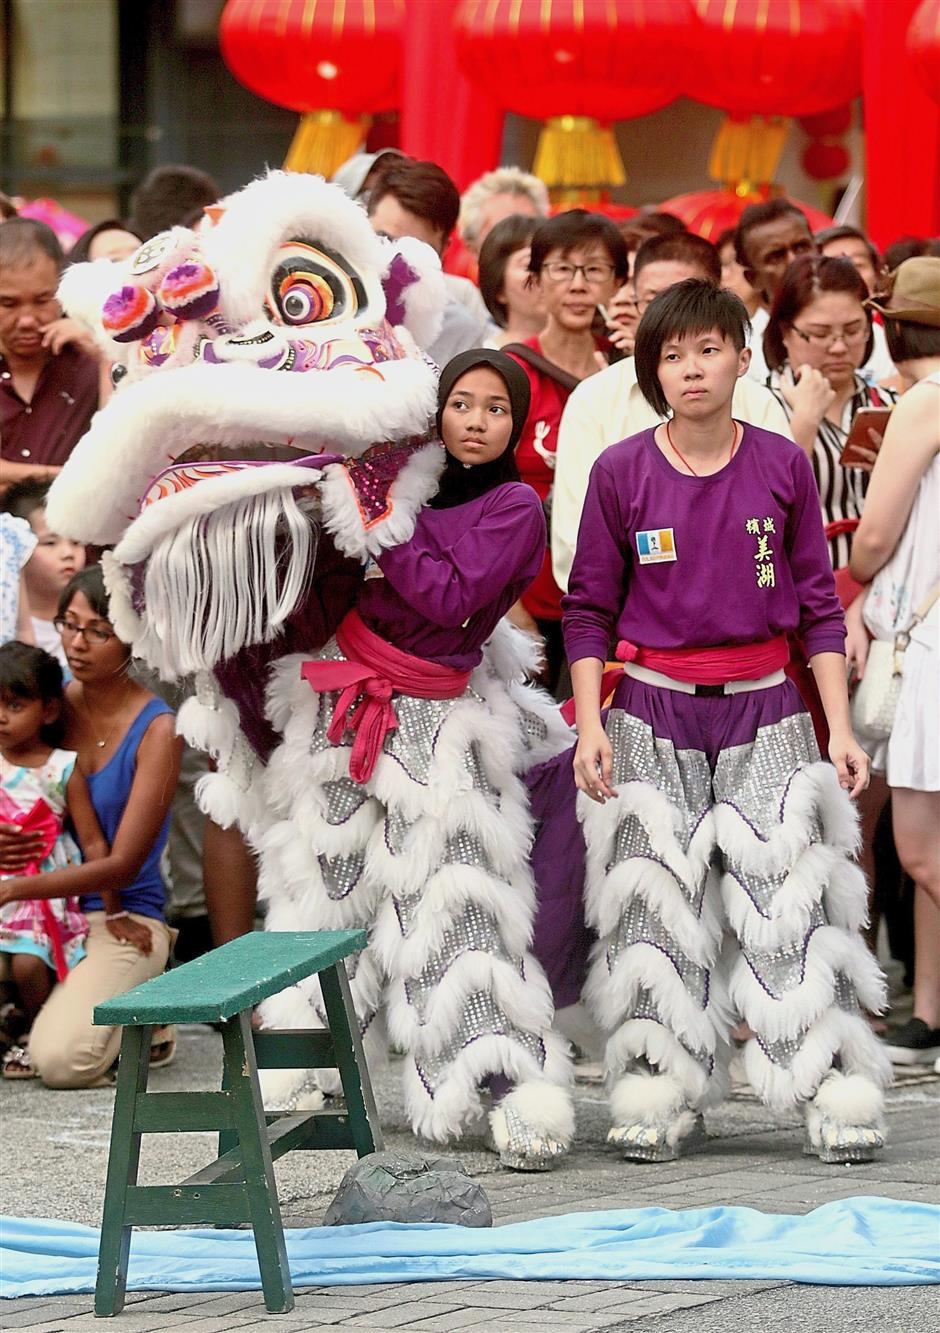 Siti Aishah and her partner Foong Kee waiting for their turn to perform the lion dance.